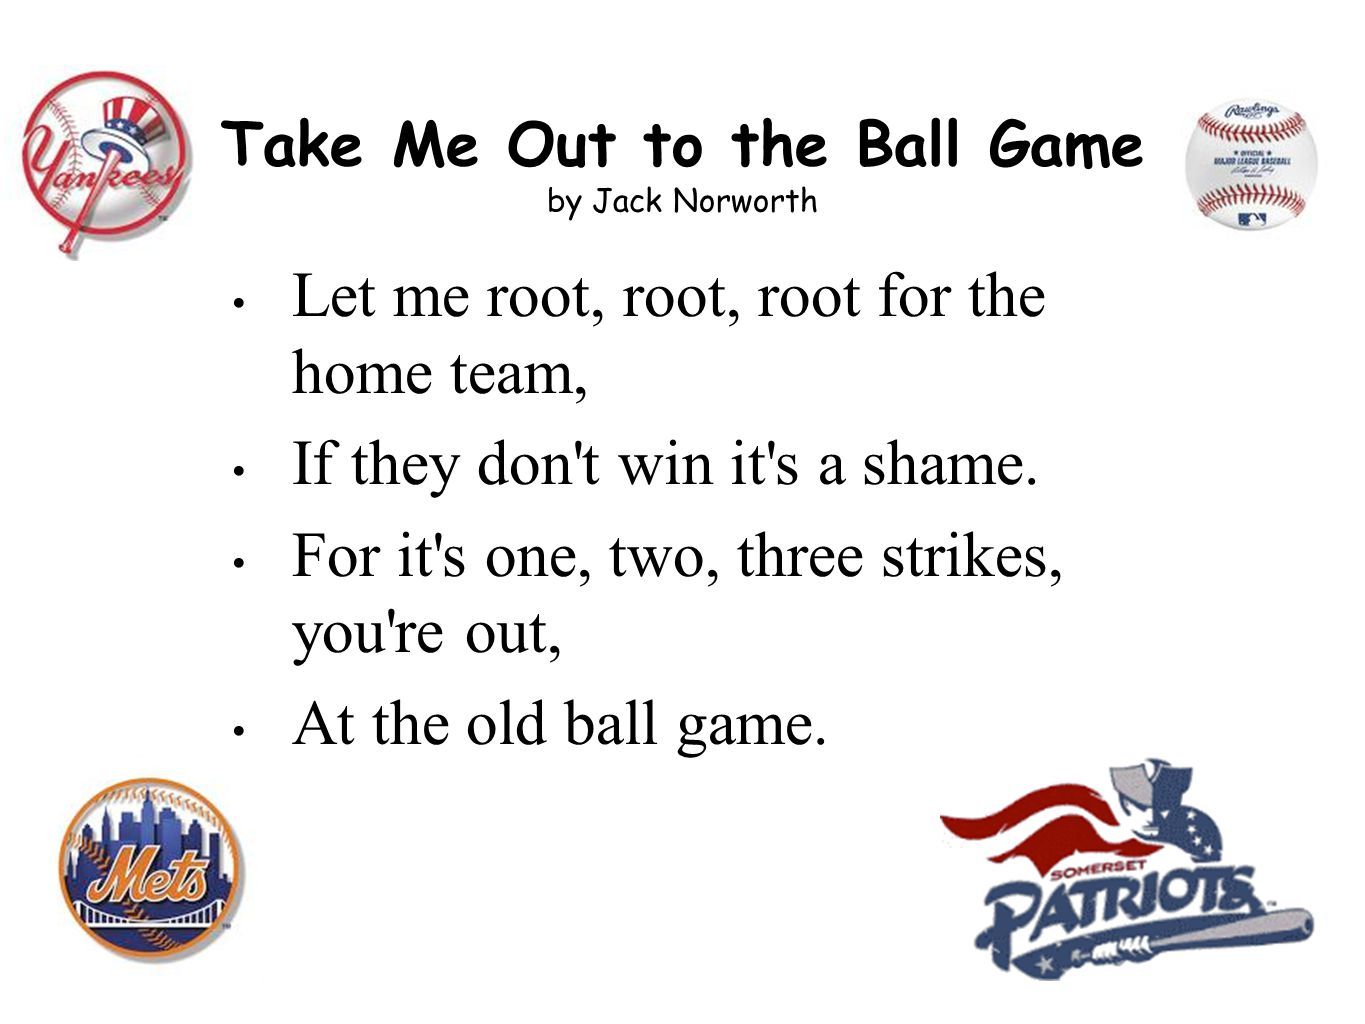 Take Me Out to the Ball Game by Jack Norworth